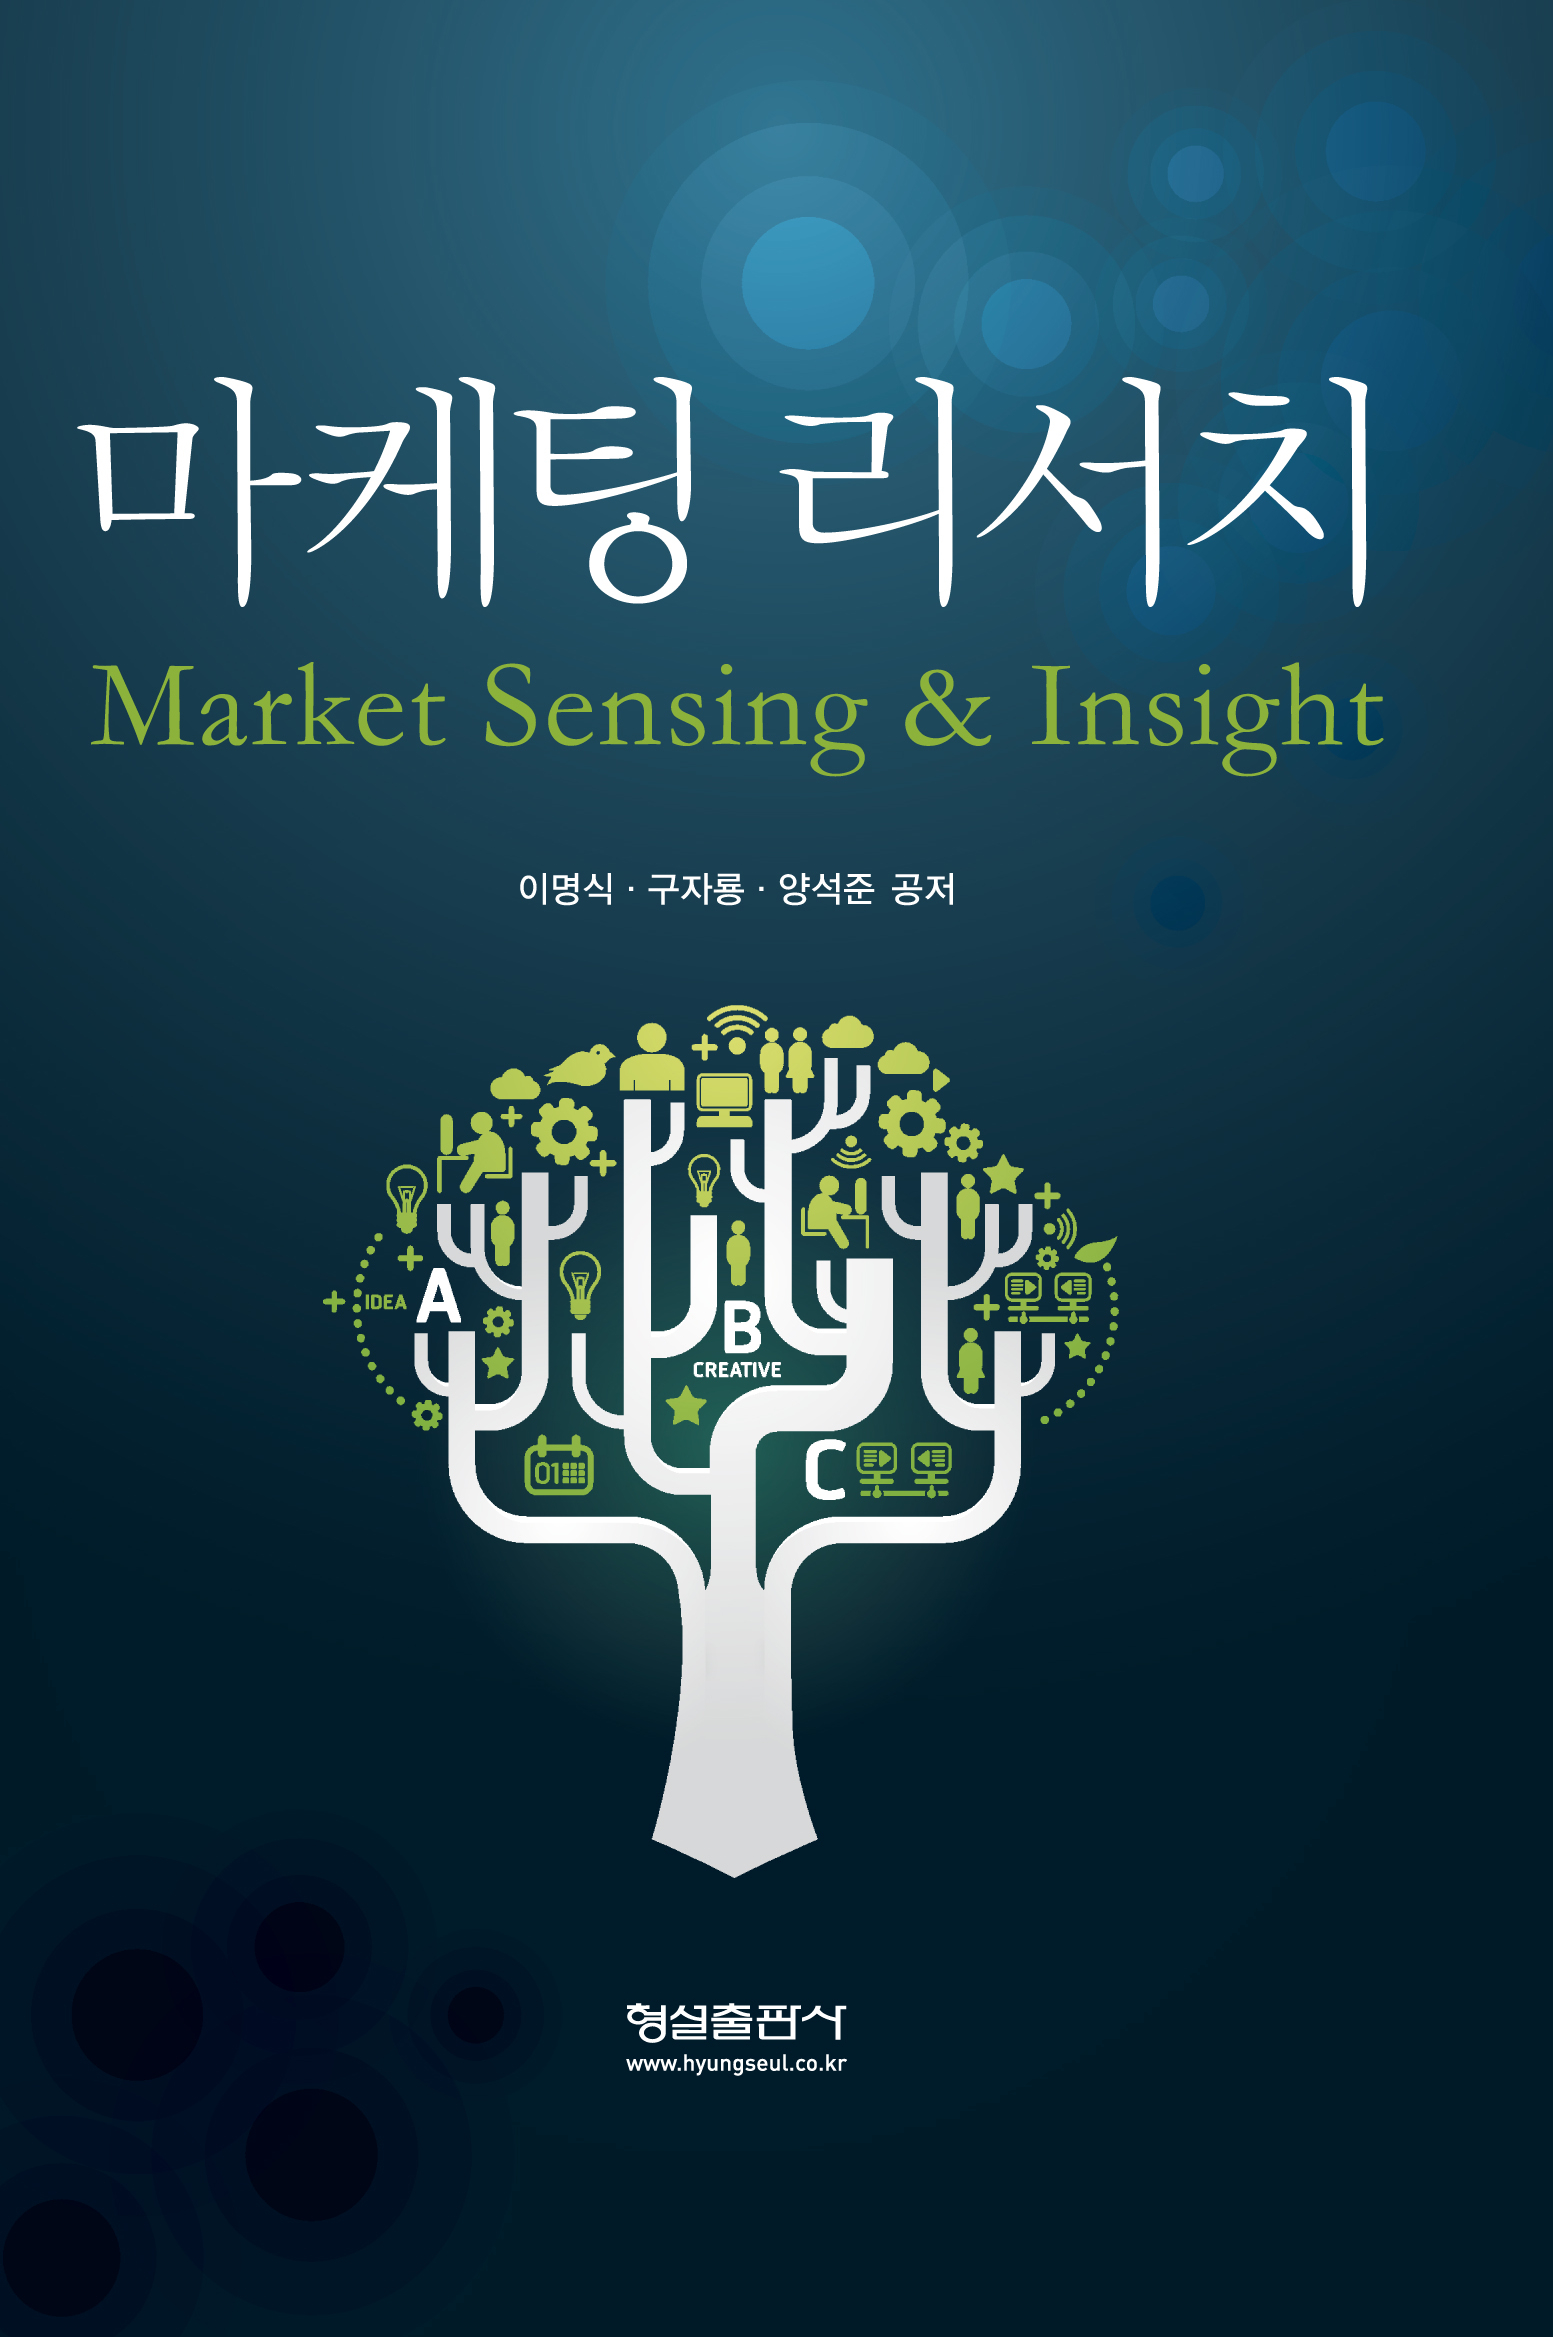 마케팅 리서치 : Market Sensing & Insight